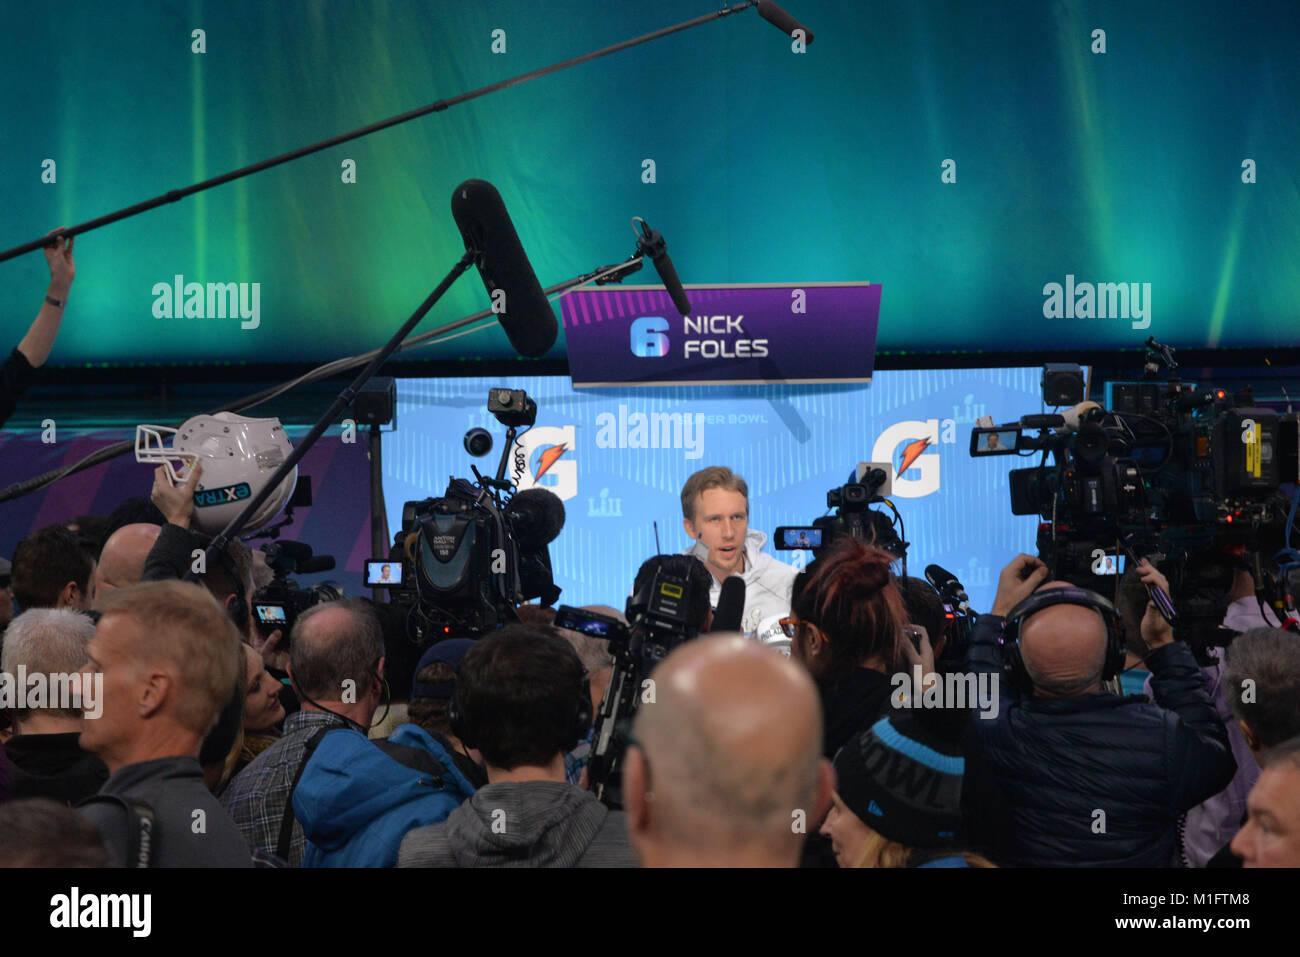 St Paul, Minn, USA. 29th Jan, 2018. Nick Foles of the Philadelphia Eagles gives an interview at the official Superbowl - Stock Image